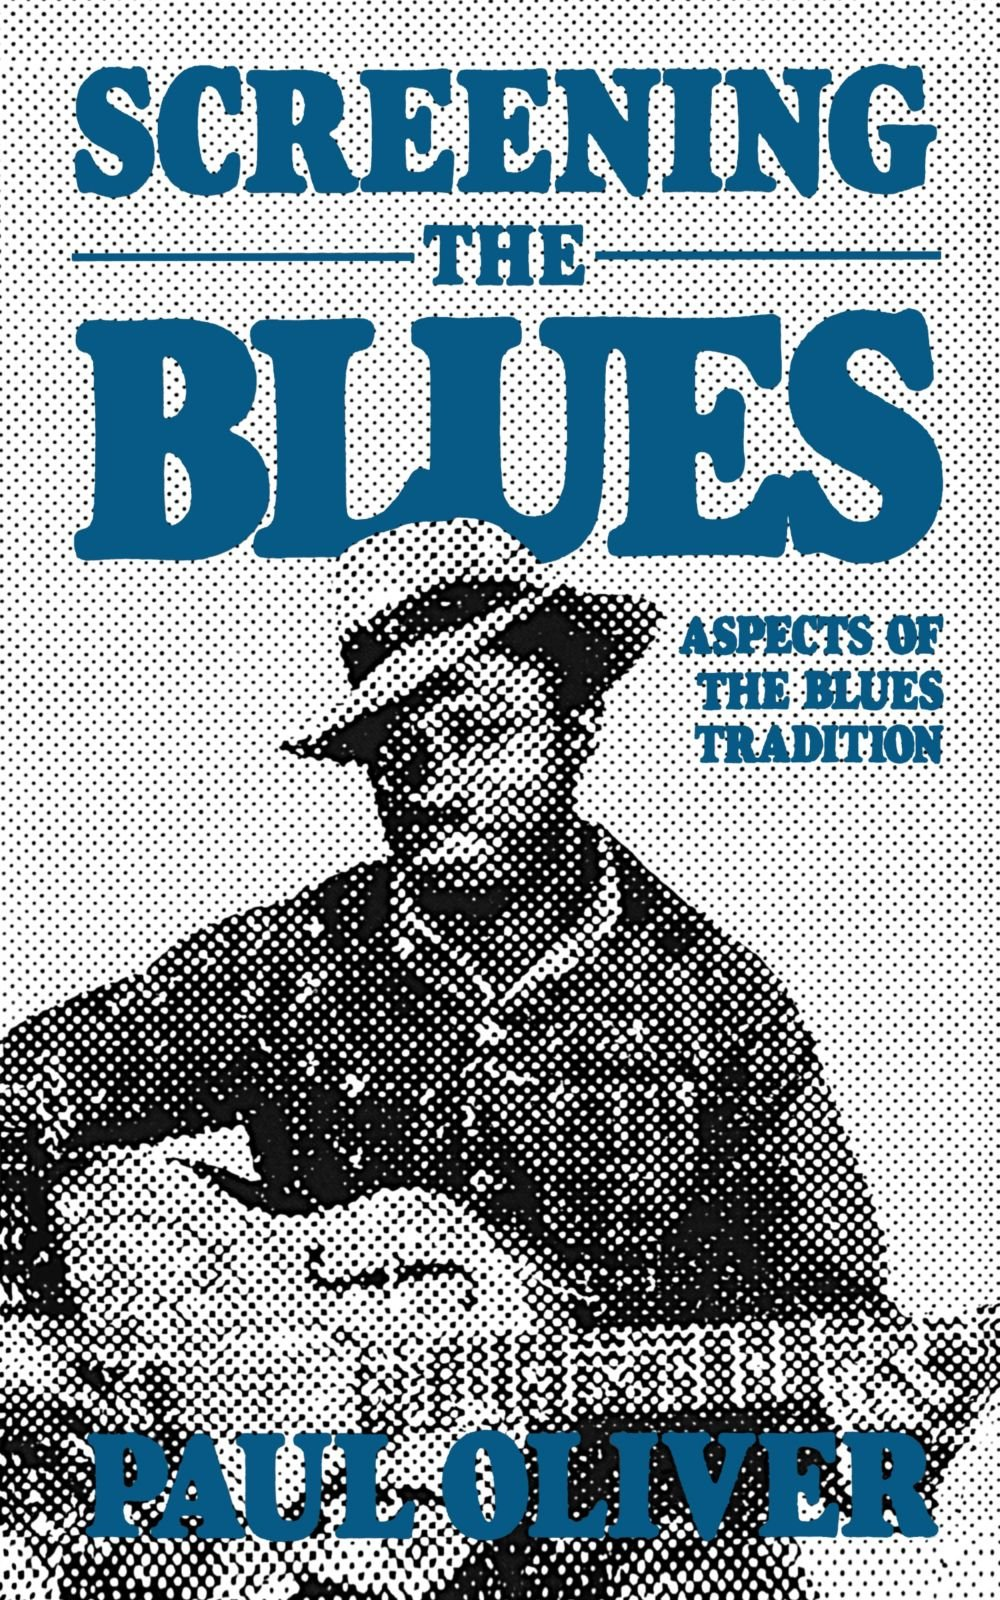 Screening The Blues: Aspects Of The Blues Tradition (A Da Capo paperback)